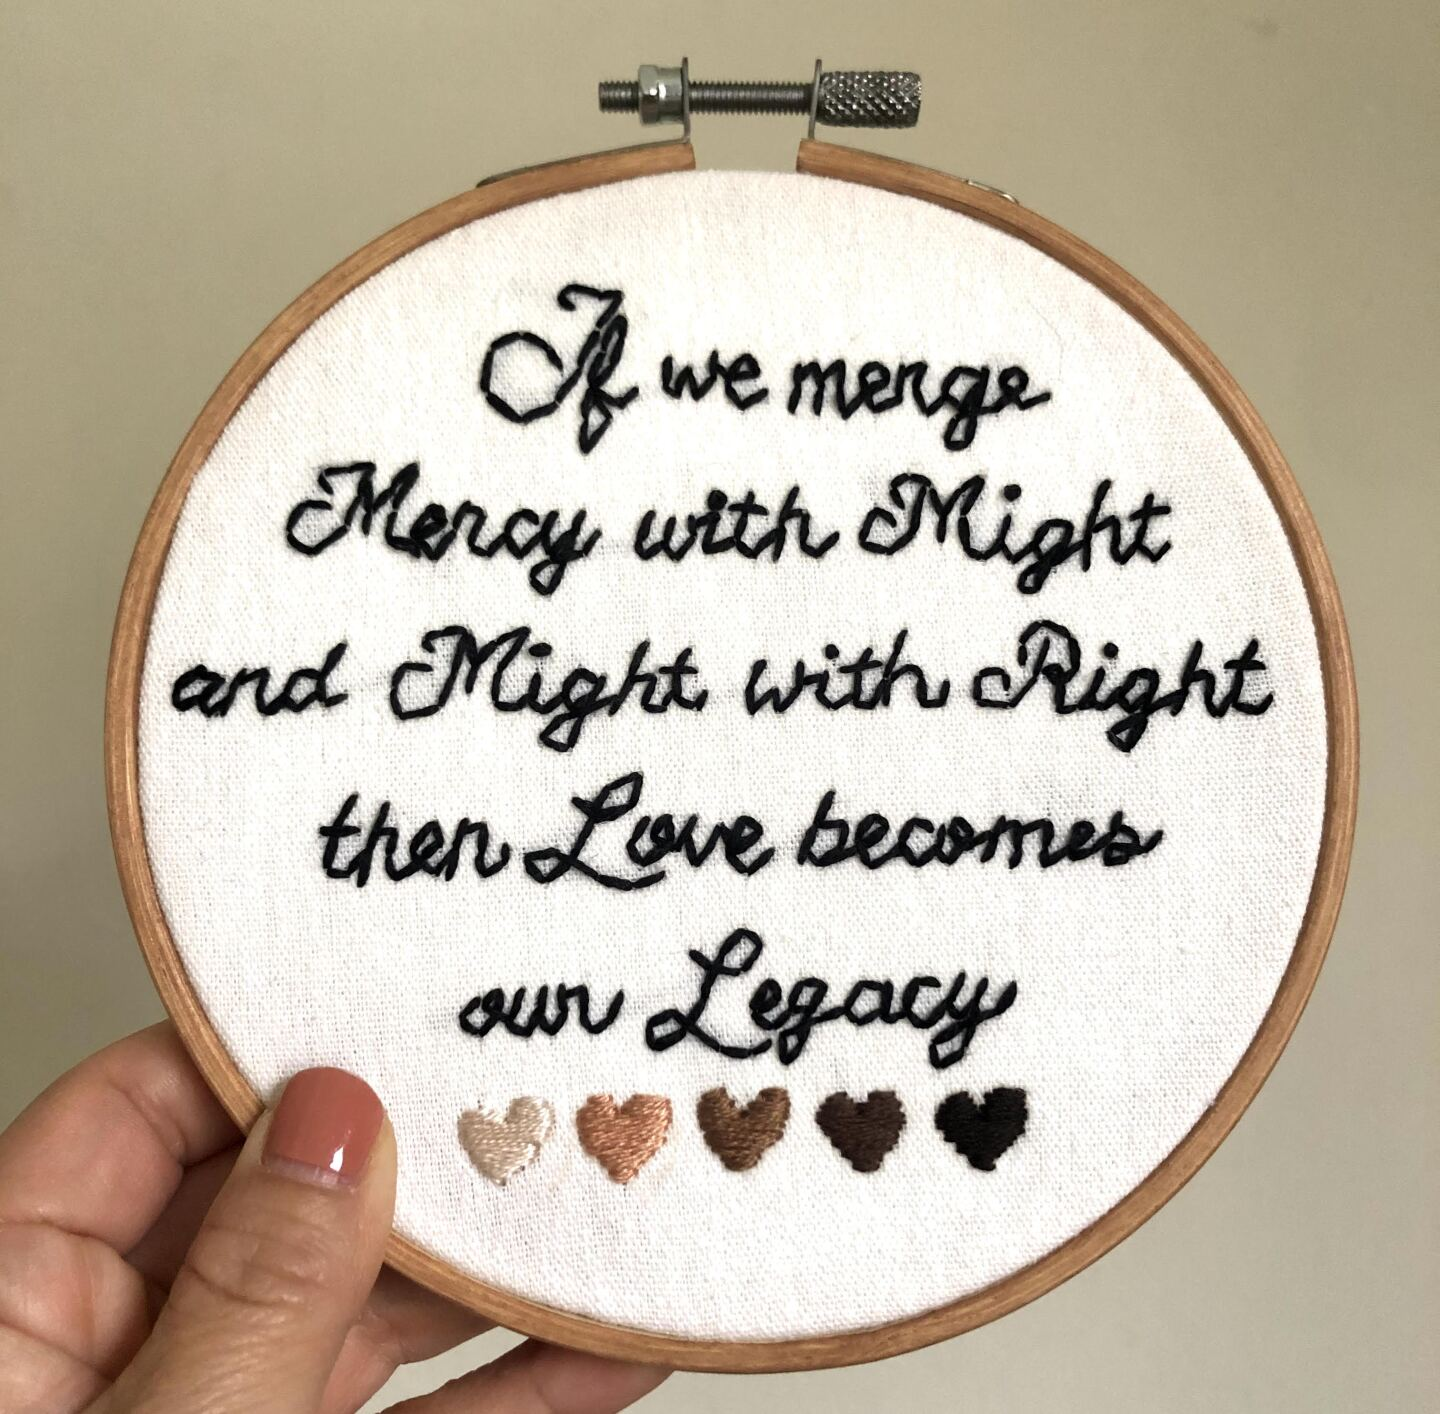 """A hand-held embroidery hoop with white fabric stretched across with the words, """"If we merge mercy with might and might with right, then love becomes our legacy,"""" embroidered in black thread. The words are a quote from Amanda Gorman's inaugural speech. At the bottom of the embroidery hoop design are five flesh-toned embroidered hearts in different shades going from lightest to darkest."""